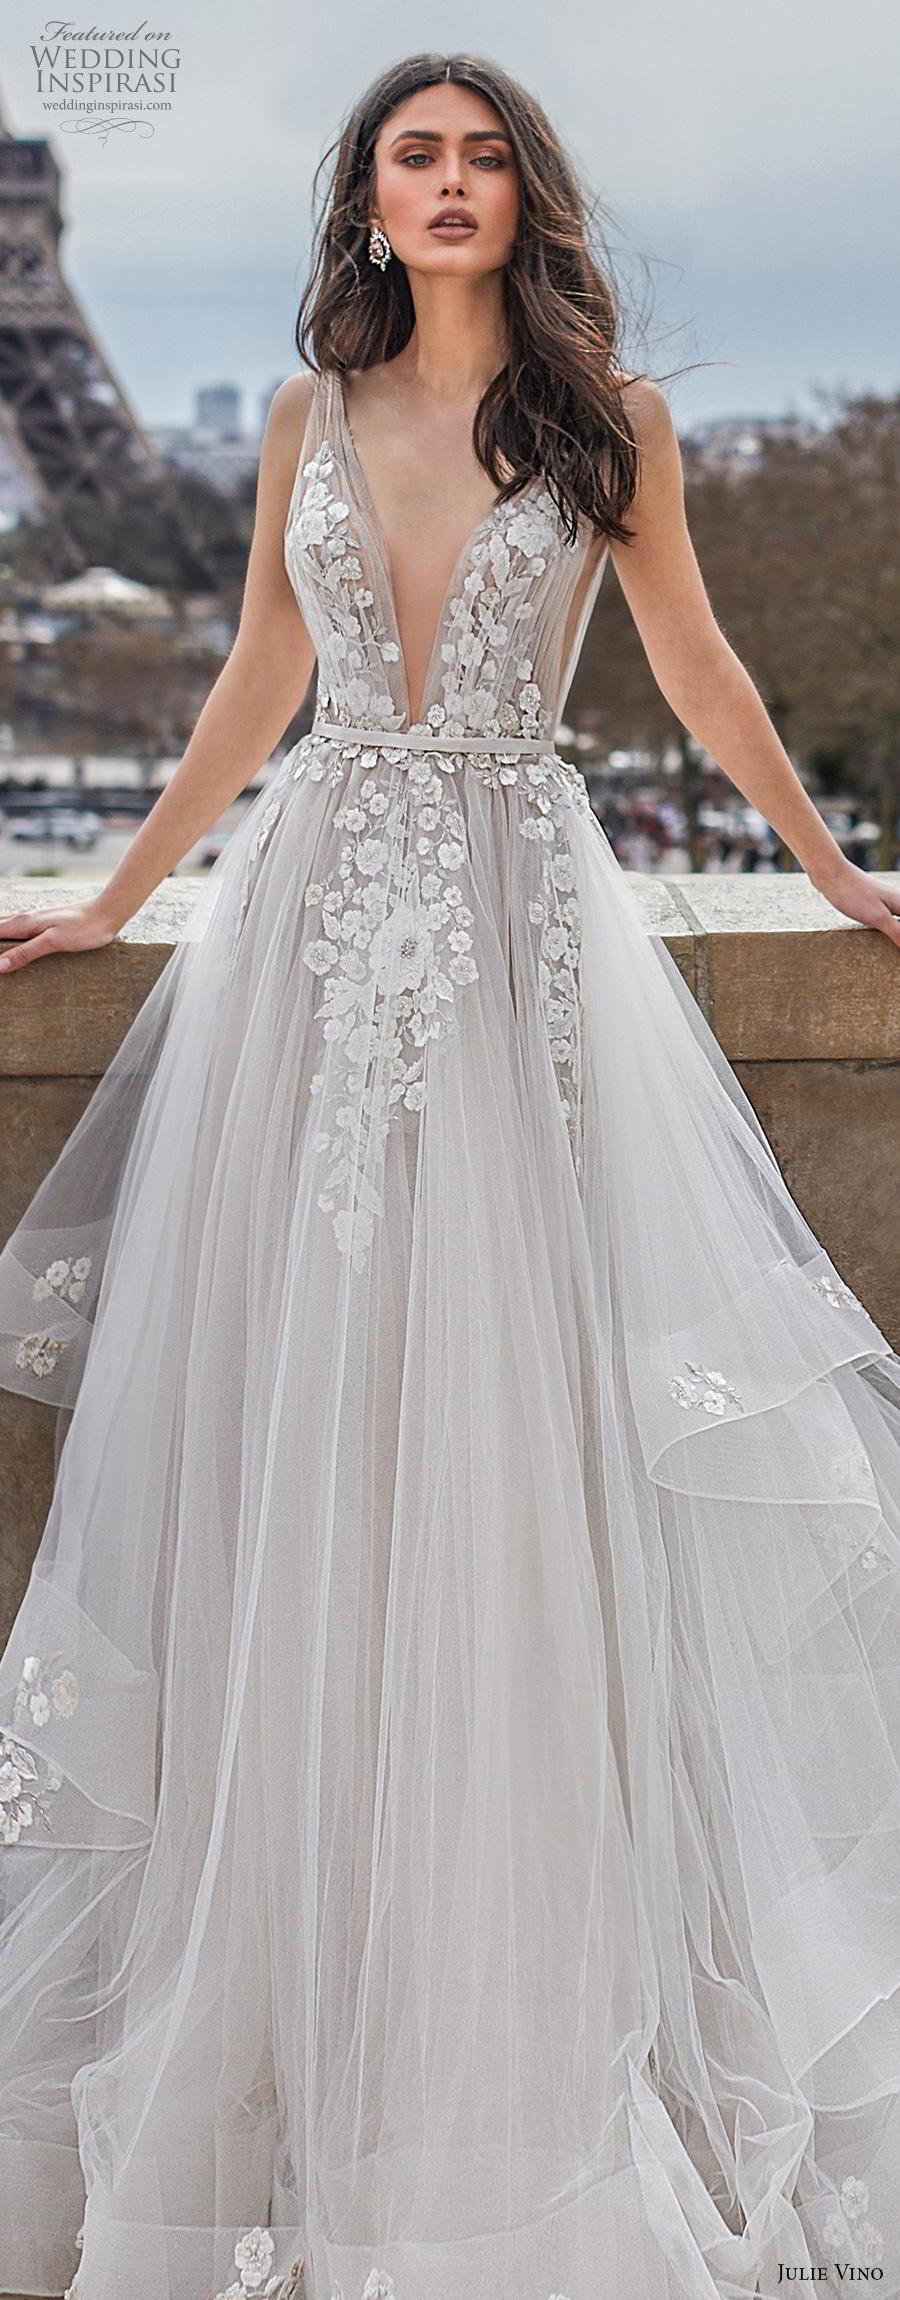 julie vino 2019 paris bridal sleeveless deep v neck heavily embellished bodice tiered skirt romantic soft a  line wedding dress backless v back chapel train (2) lv